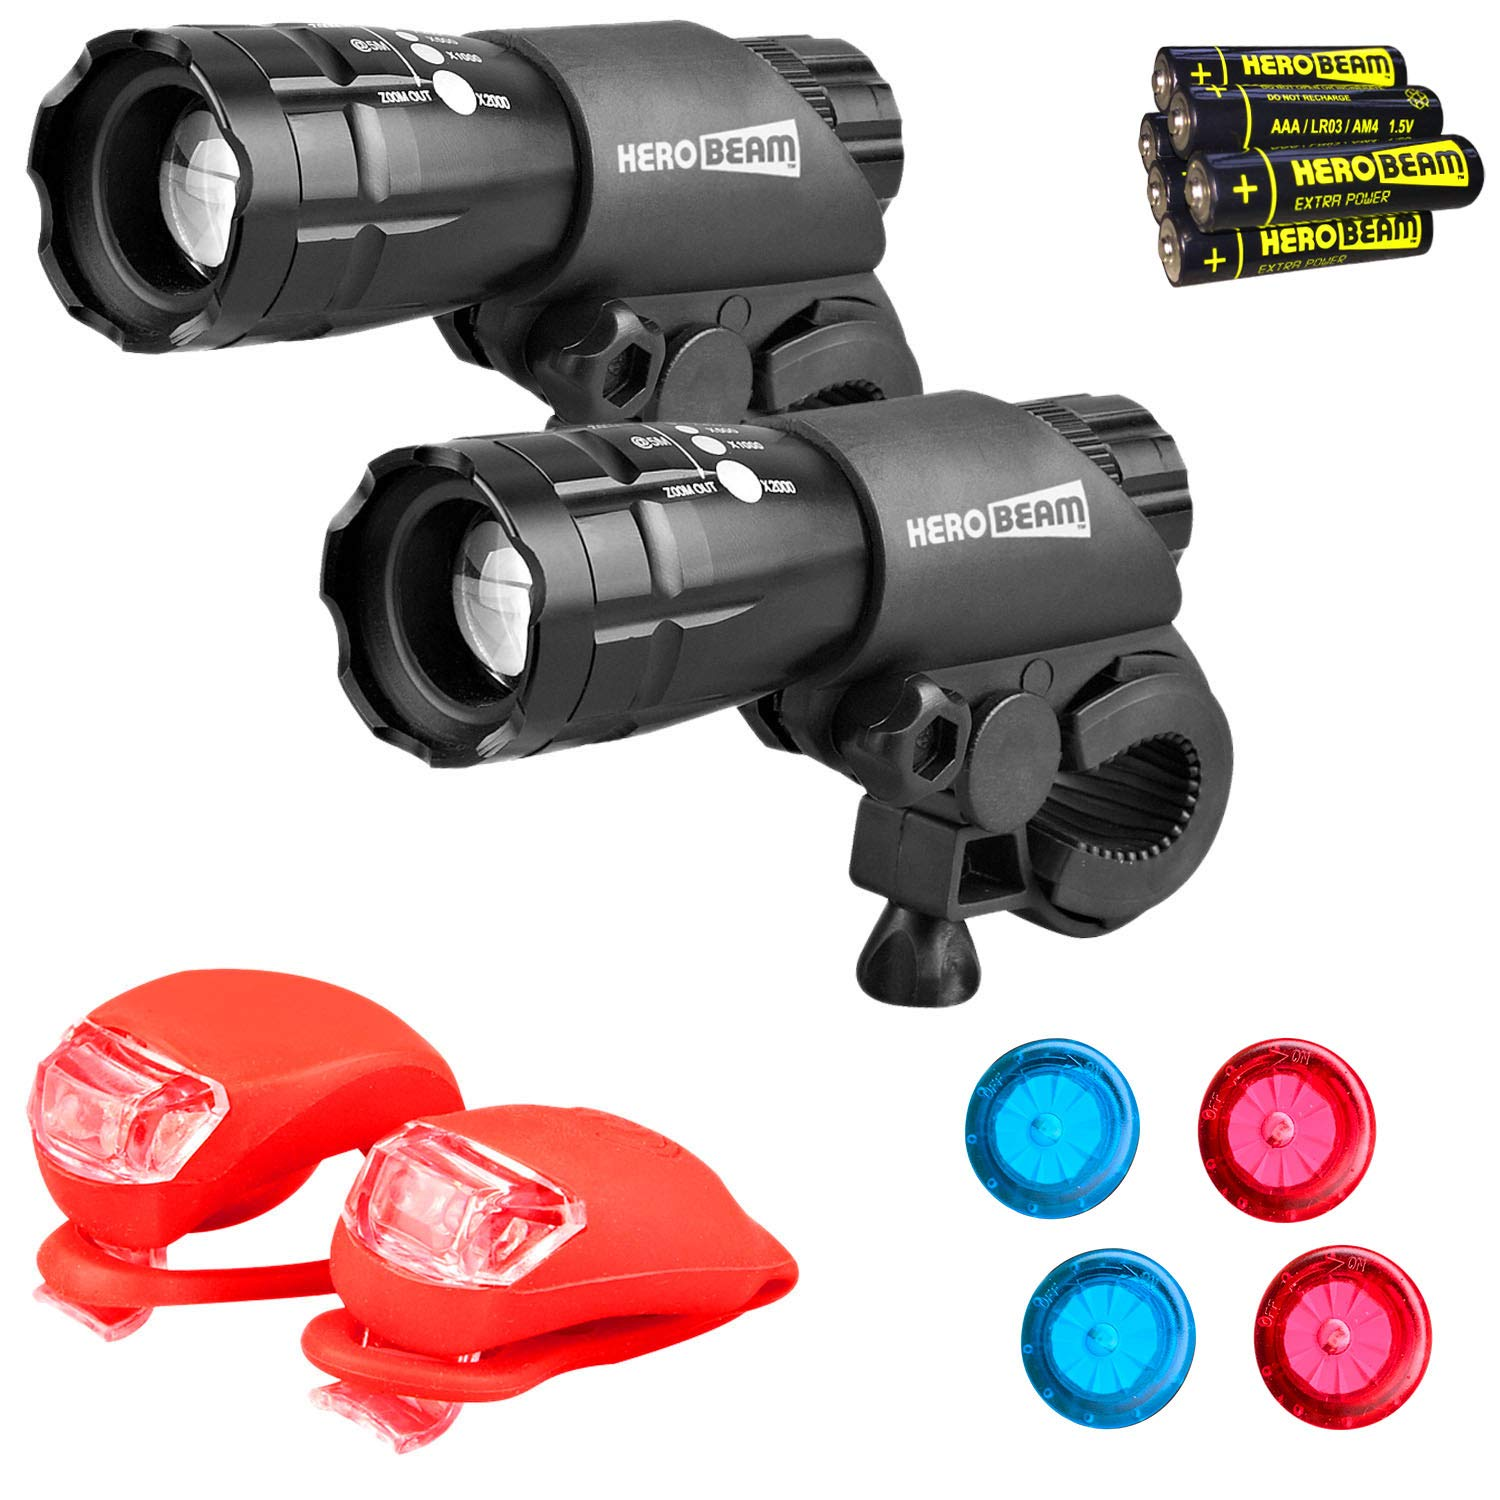 HeroBeam Bike Lights Double Set - The Ultimate Lighting and Safety Pack of Super Bright Front Bicycle Lights, Tail Lights and Wheel Lights - Includes All Batteries - 5 Year Warranty